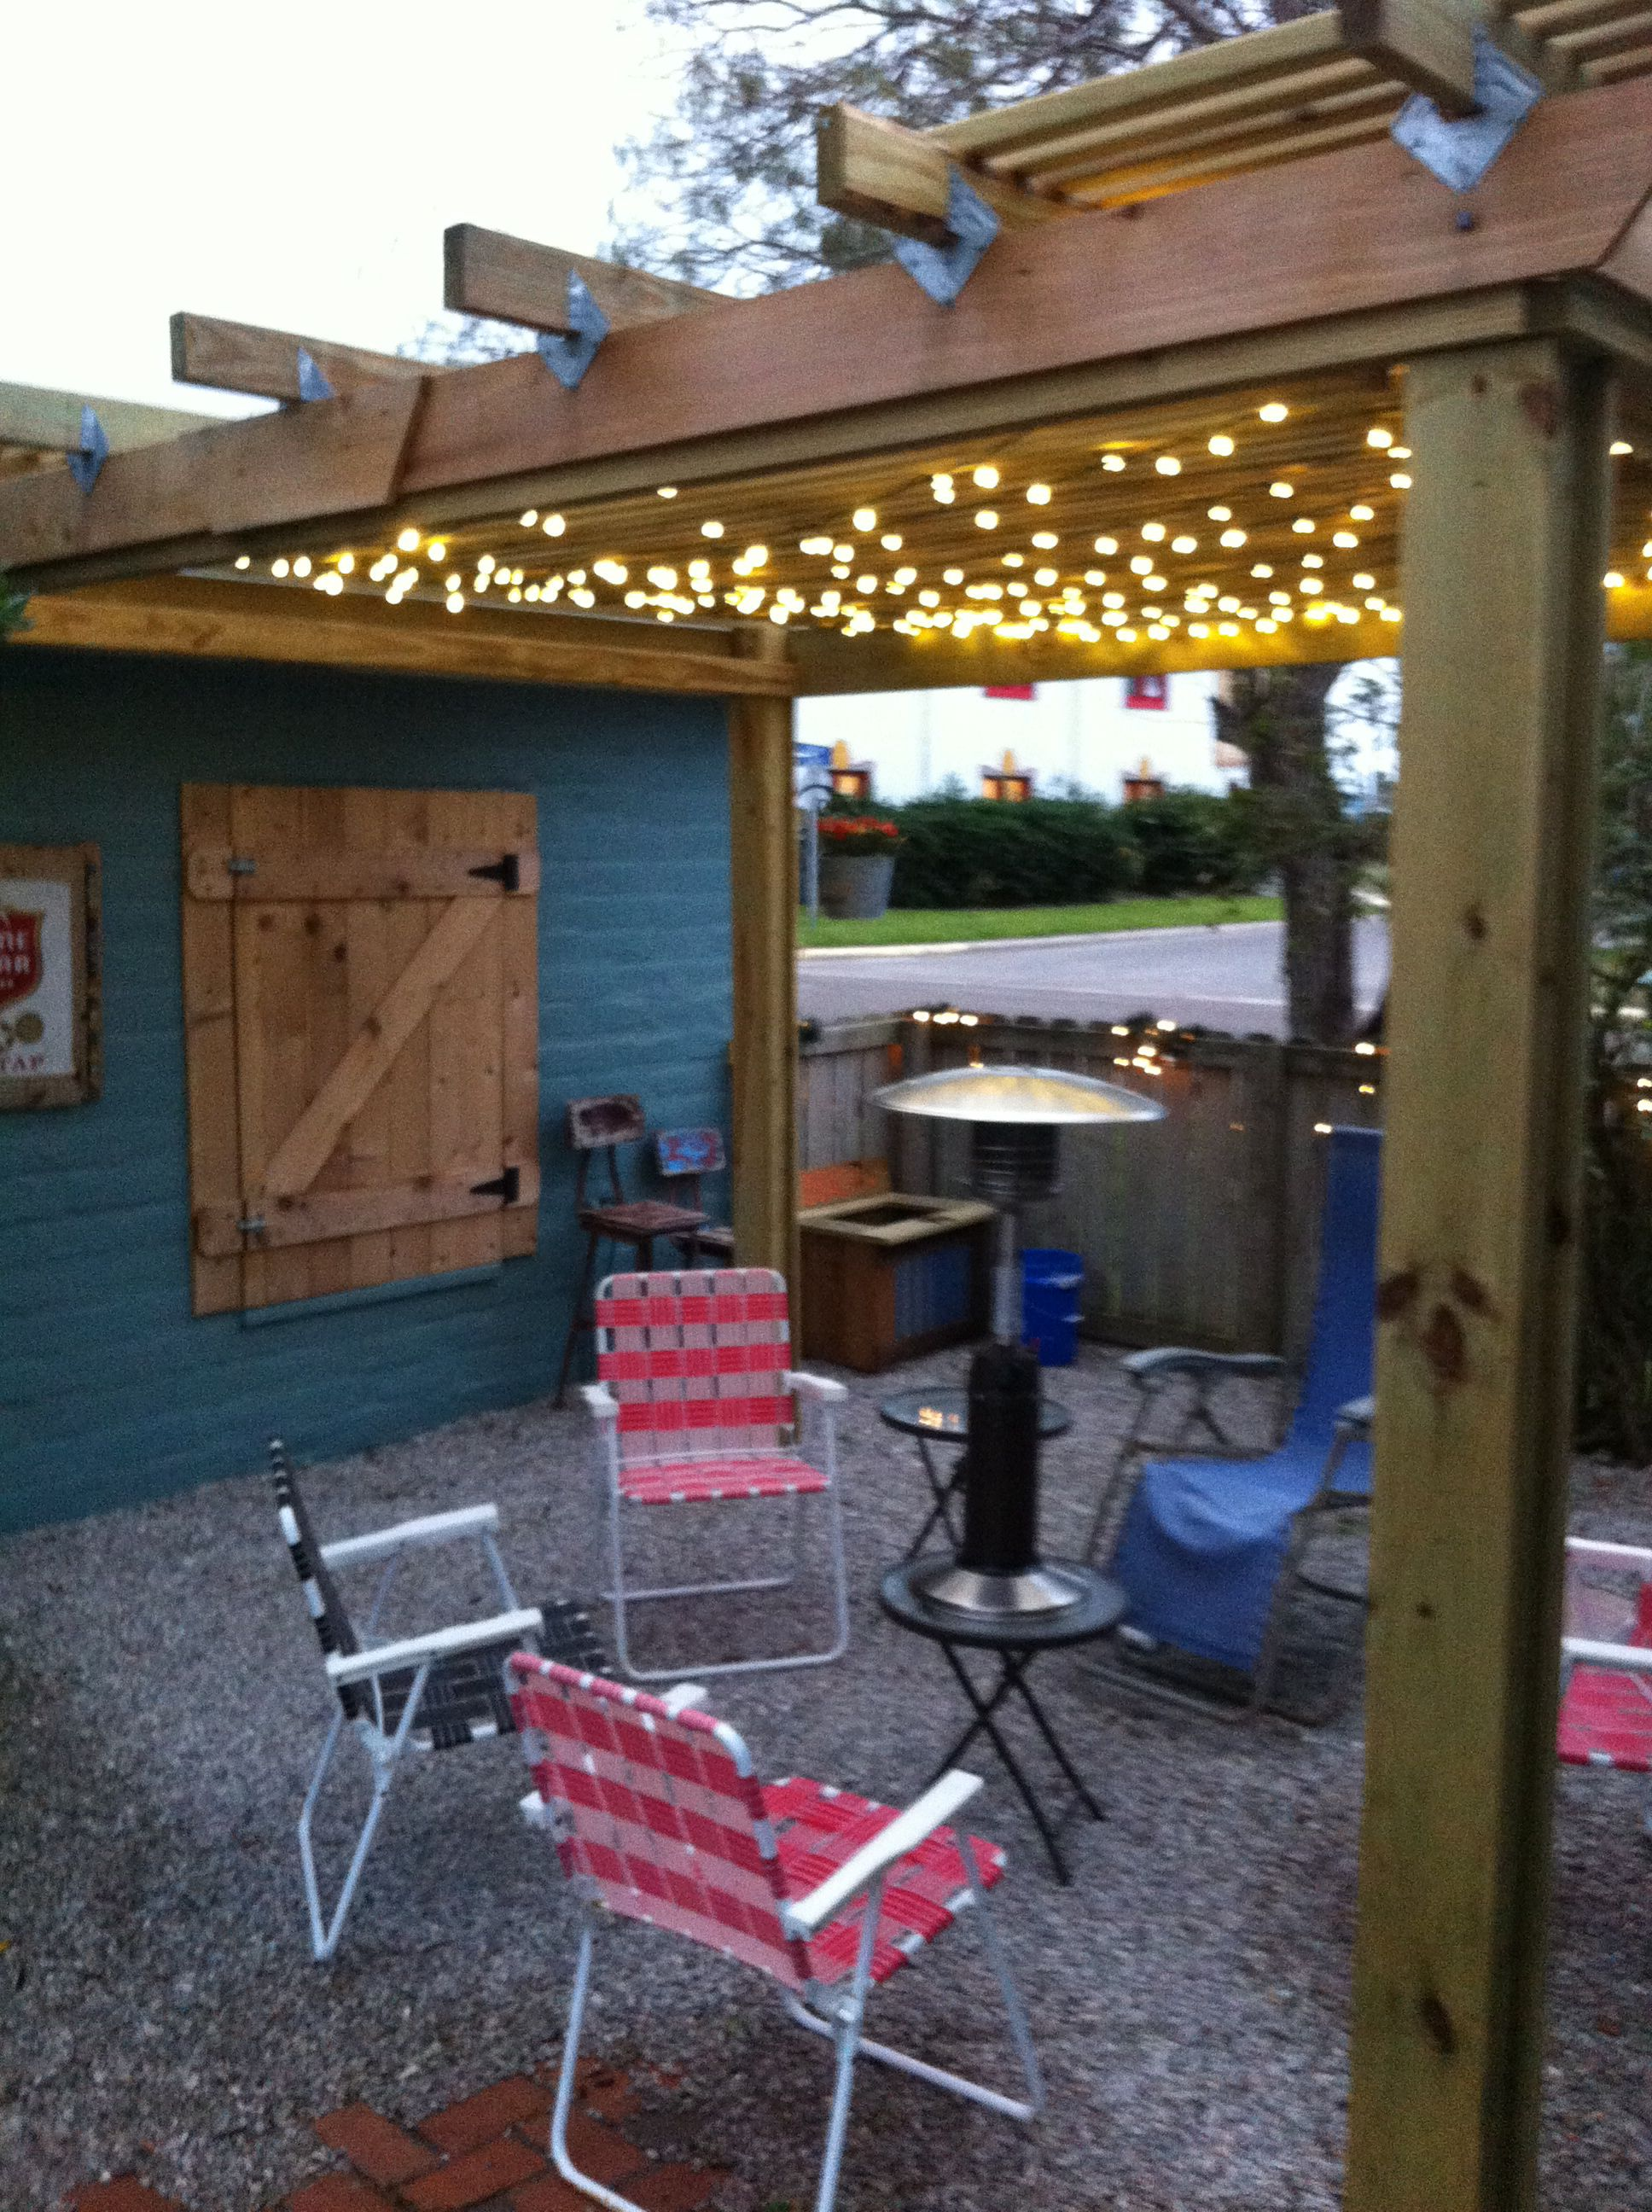 Beer garden with lights | Beer garden, Beer garden ideas ...